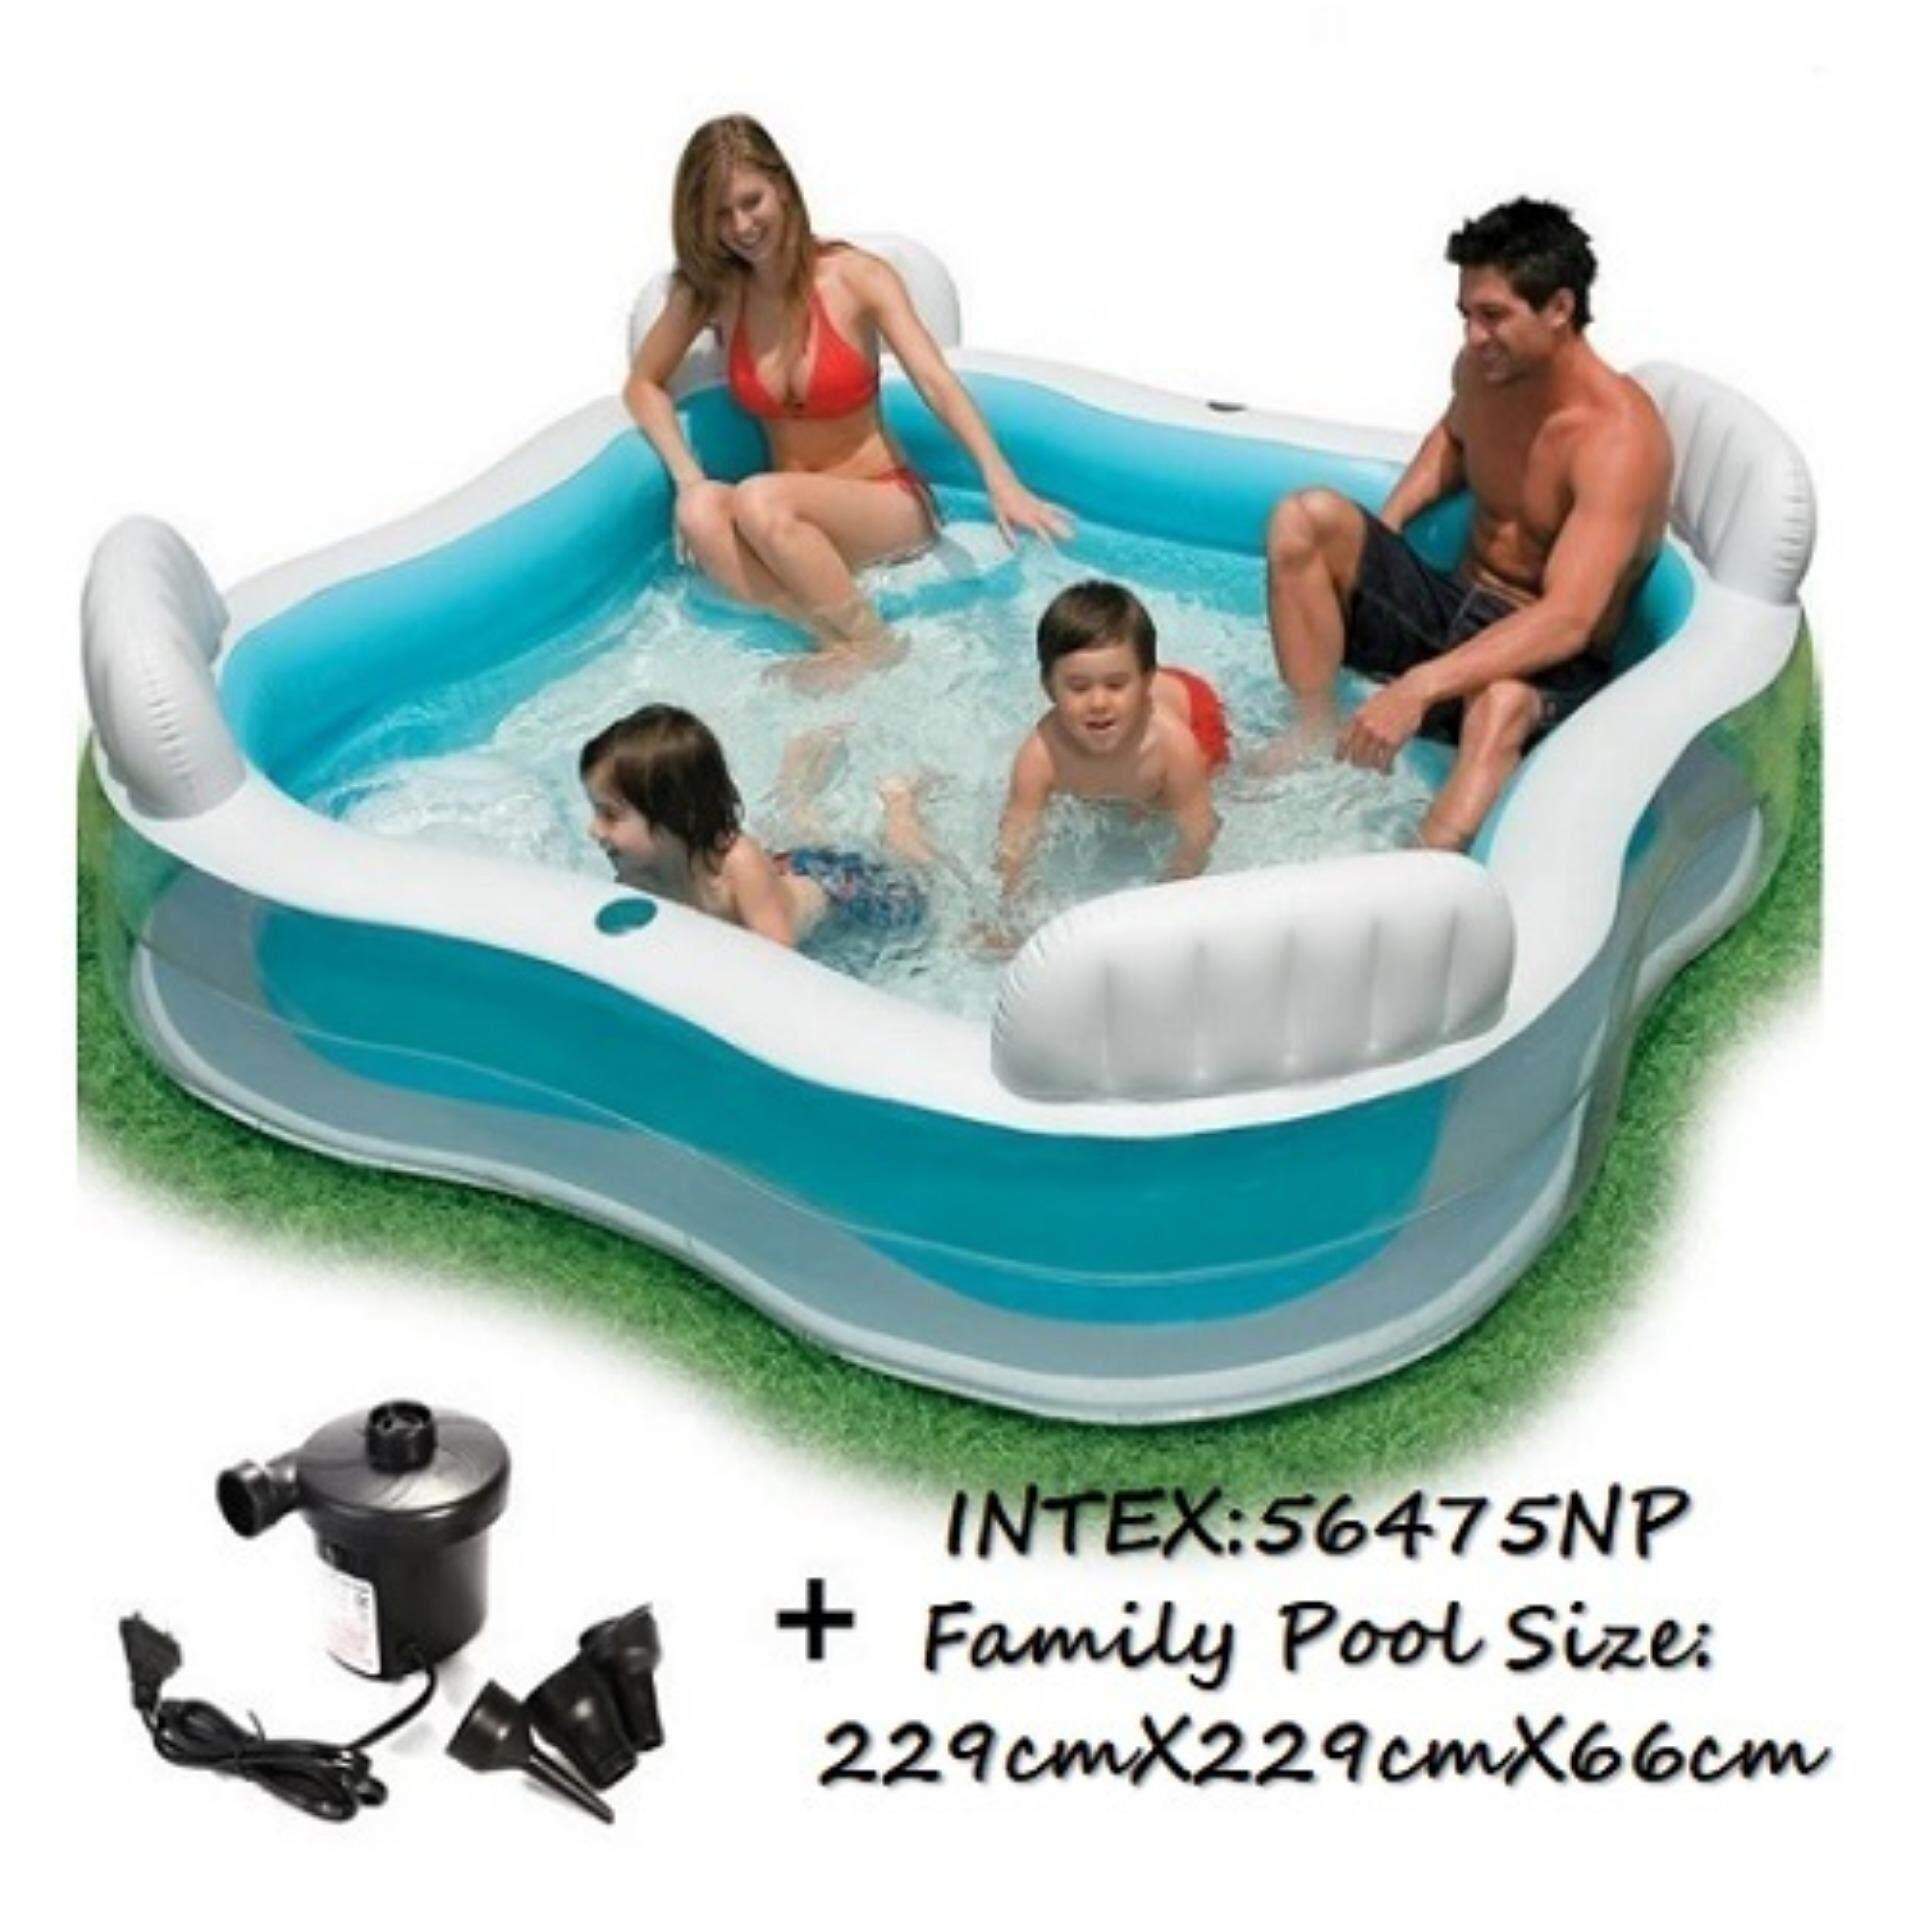 INTEX Swim Family Pool Sofa Pool Free Electric Pump with Pump